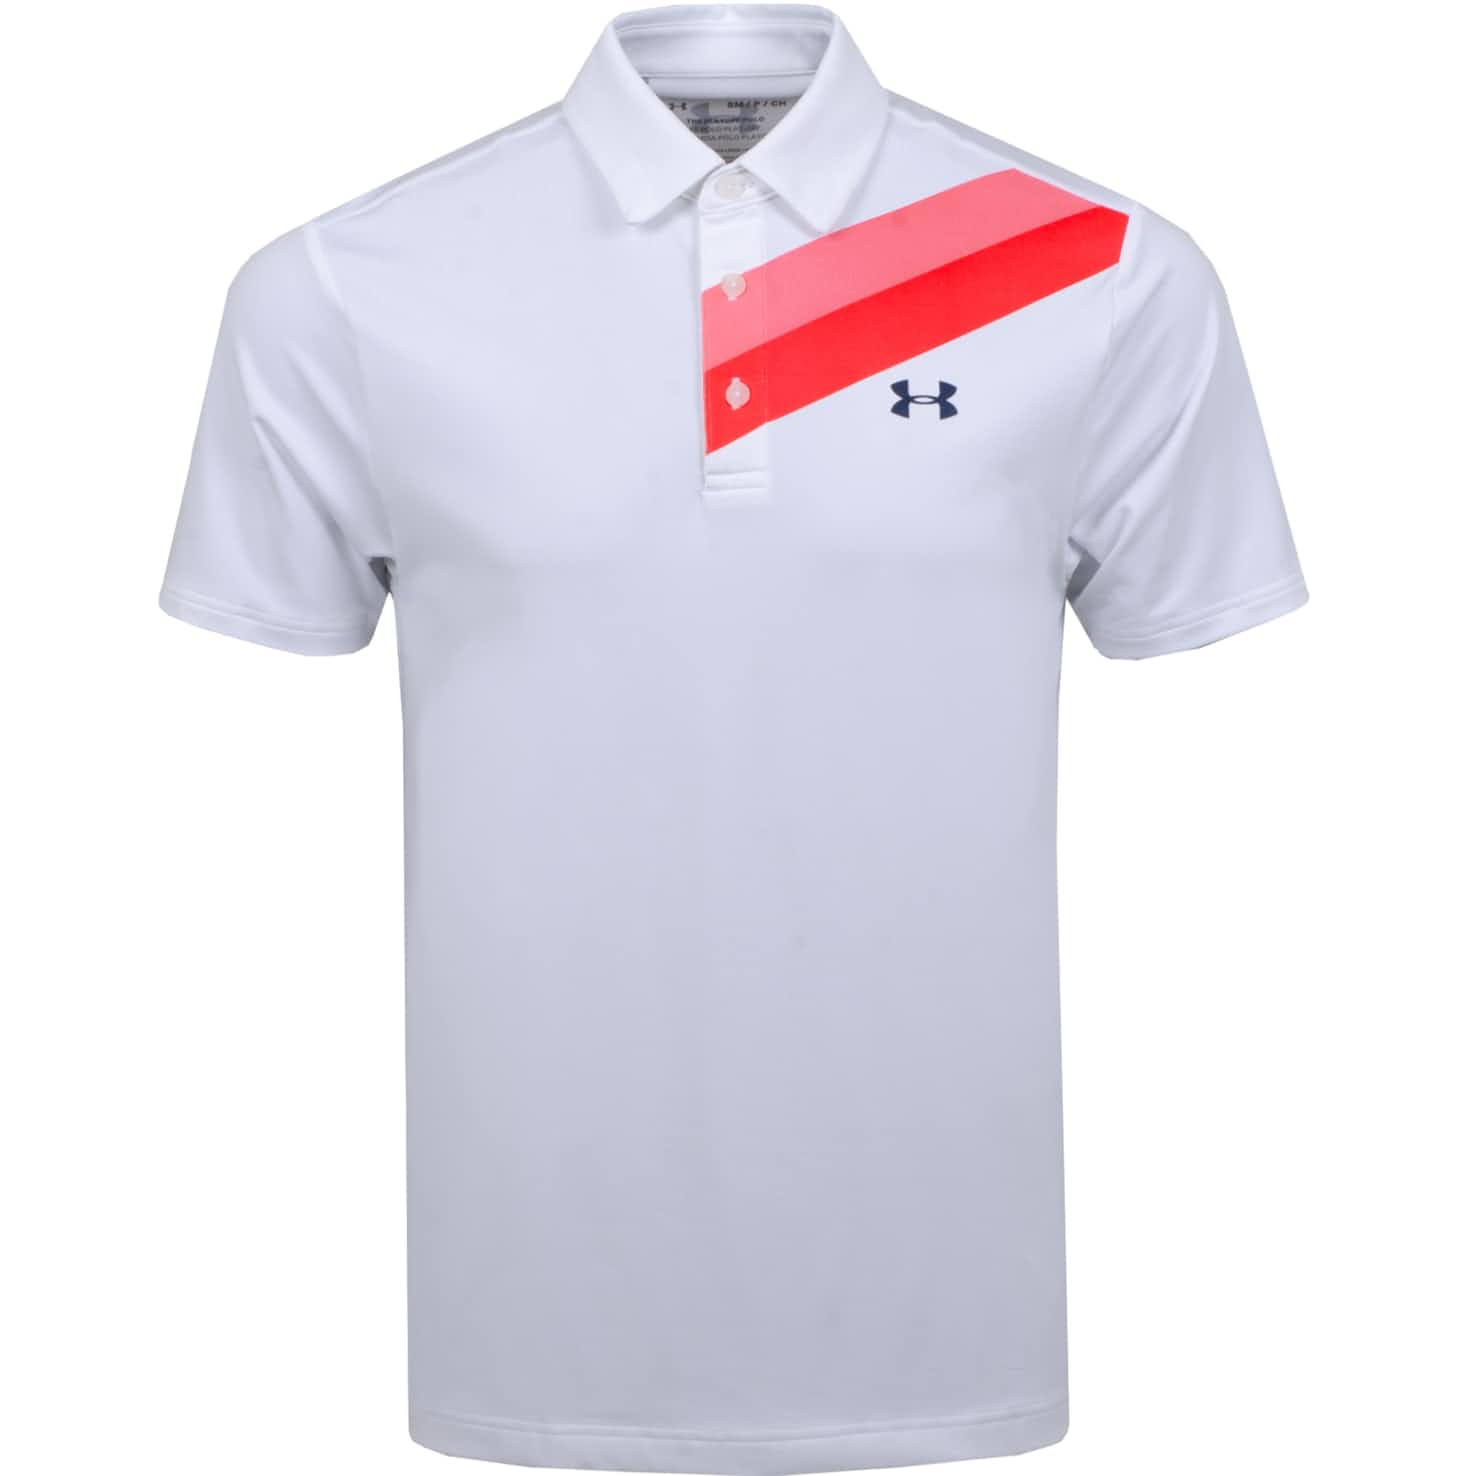 Playoff Polo 2.0 Shoulder Graphic White/Beta - SS20